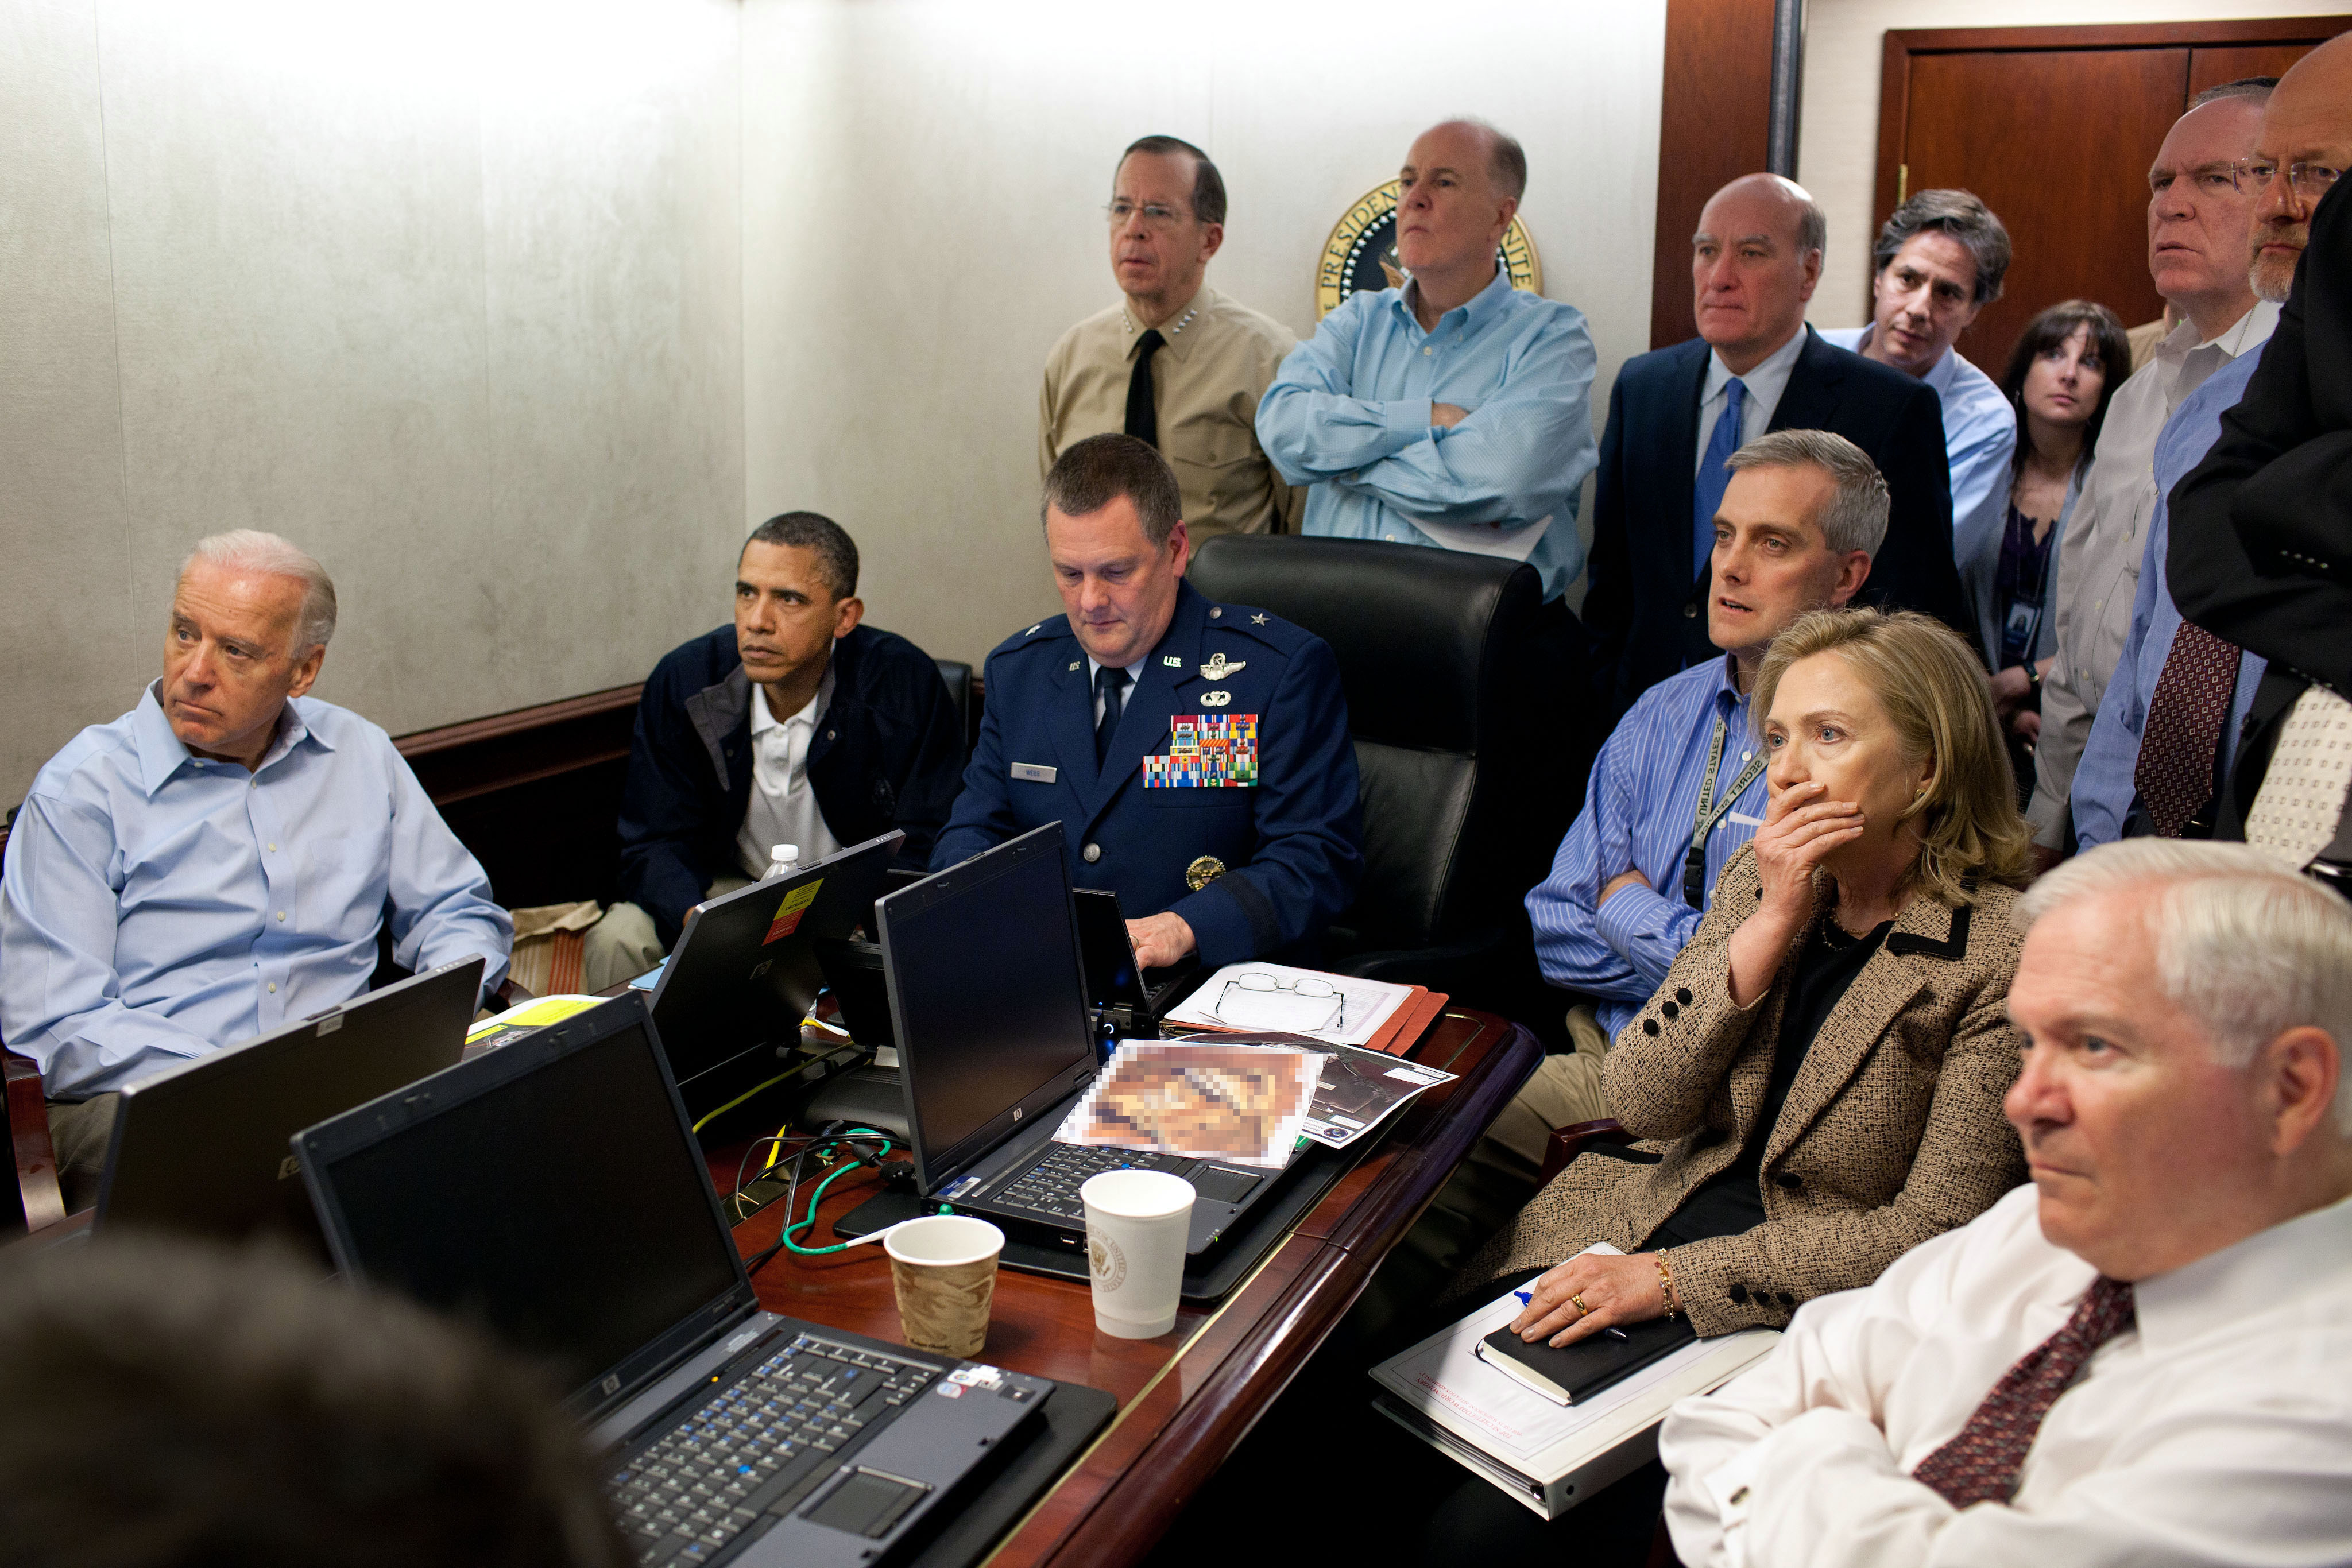 President Barack Obama, Vice President Joe Biden, Secretary of State Hillary Clinton and members of the national security team receive an update on the mission against Osama bin Laden in the Situation Room of the White House May 1, 2011 in Washington, DC. Obama later announced that the United States had killed Bin Laden in an operation led by U.S. Special Forces at a compound in Abbottabad, Pakistan.